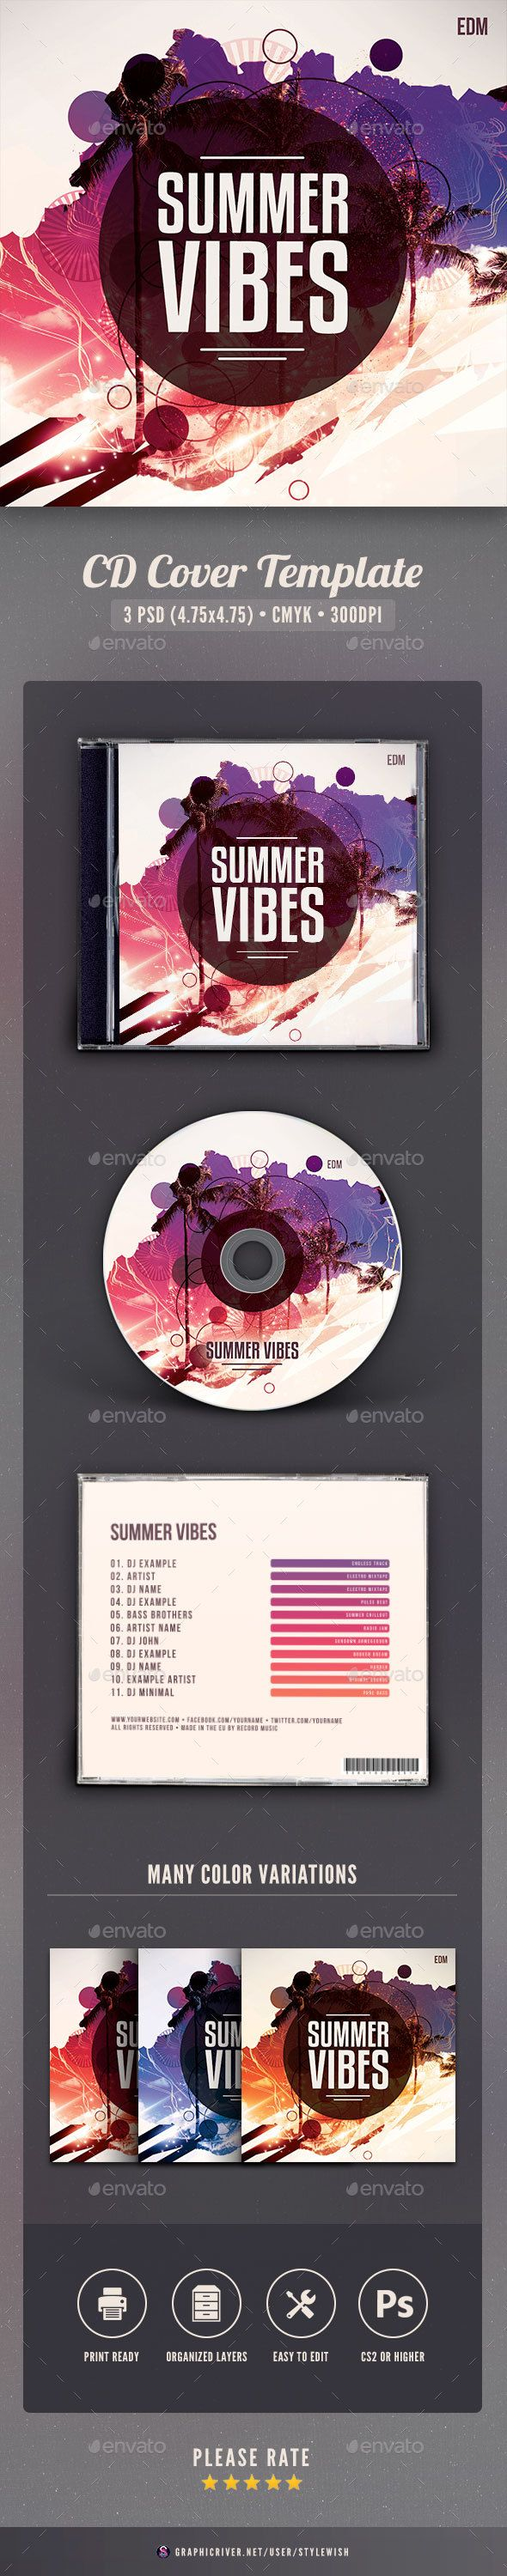 Summer Vibes CD Cover Artwork - #CD & DVD #Artwork Print #Templates Download here: https://graphicriver.net/item/summer-vibes-cd-cover-artwork/19428705?ref=alena994